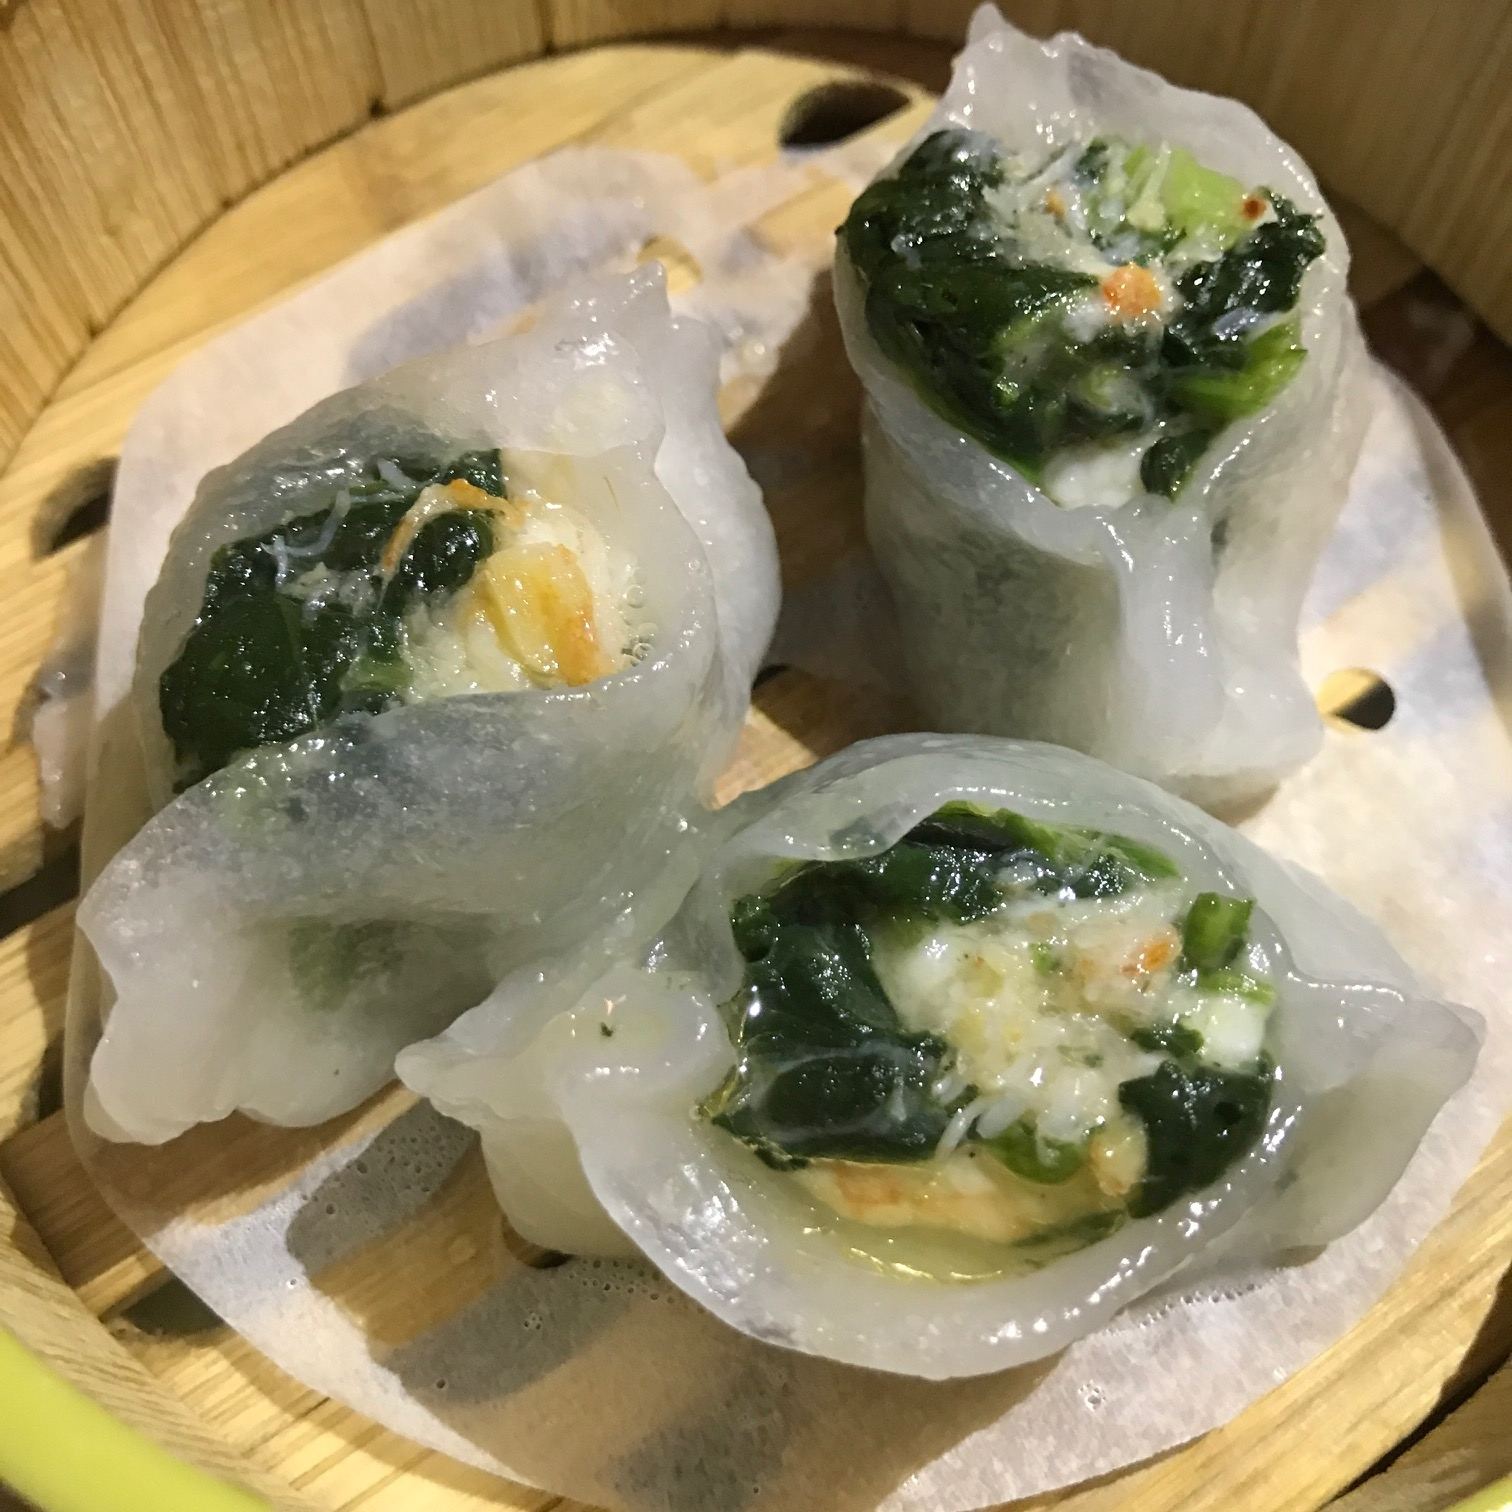 Delish Dim Sum On Upper West Side…